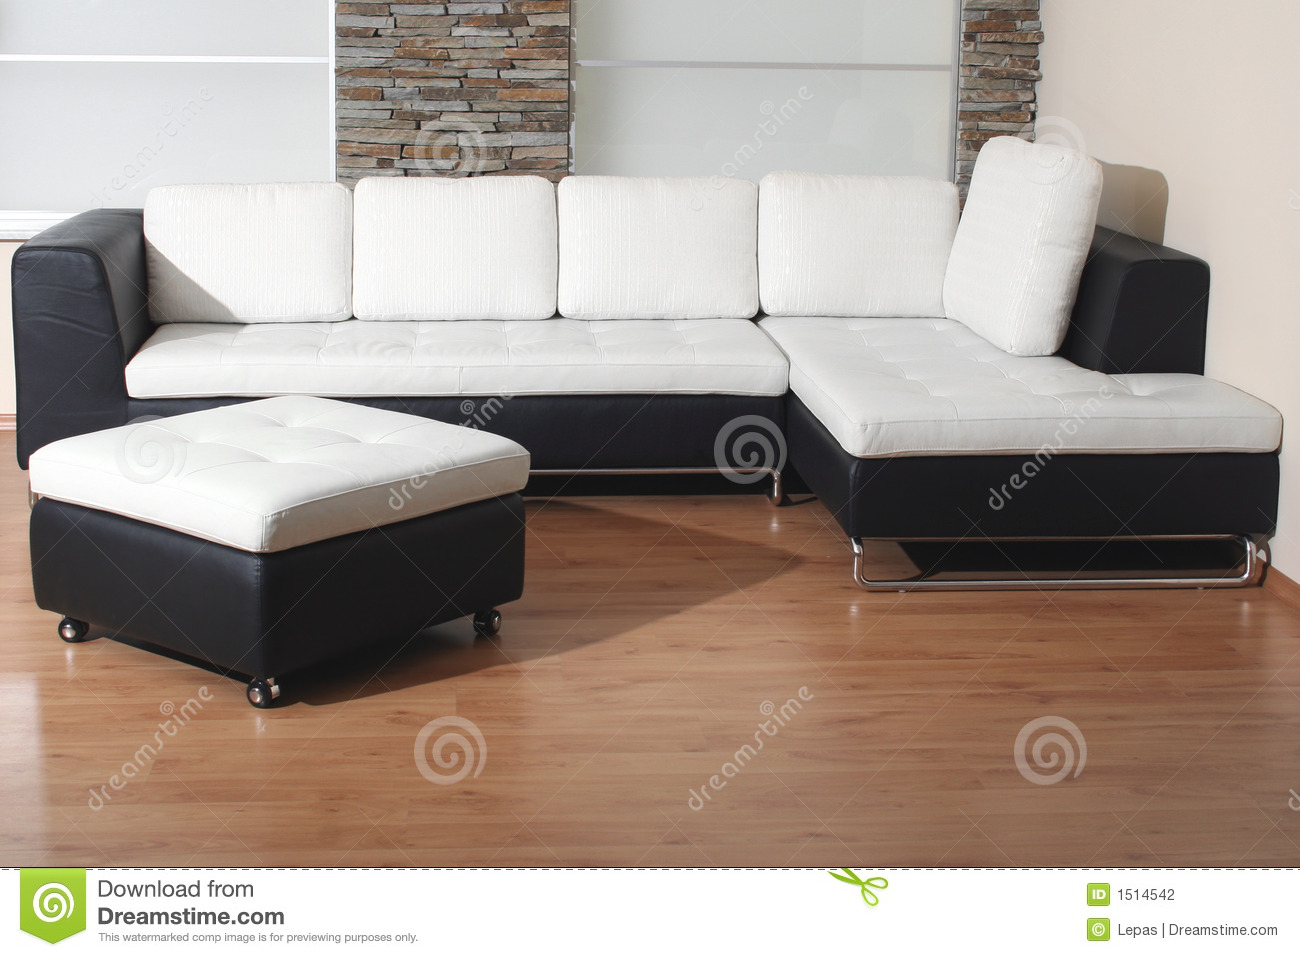 Black And White Furniture Stock Photo. Image Of Home